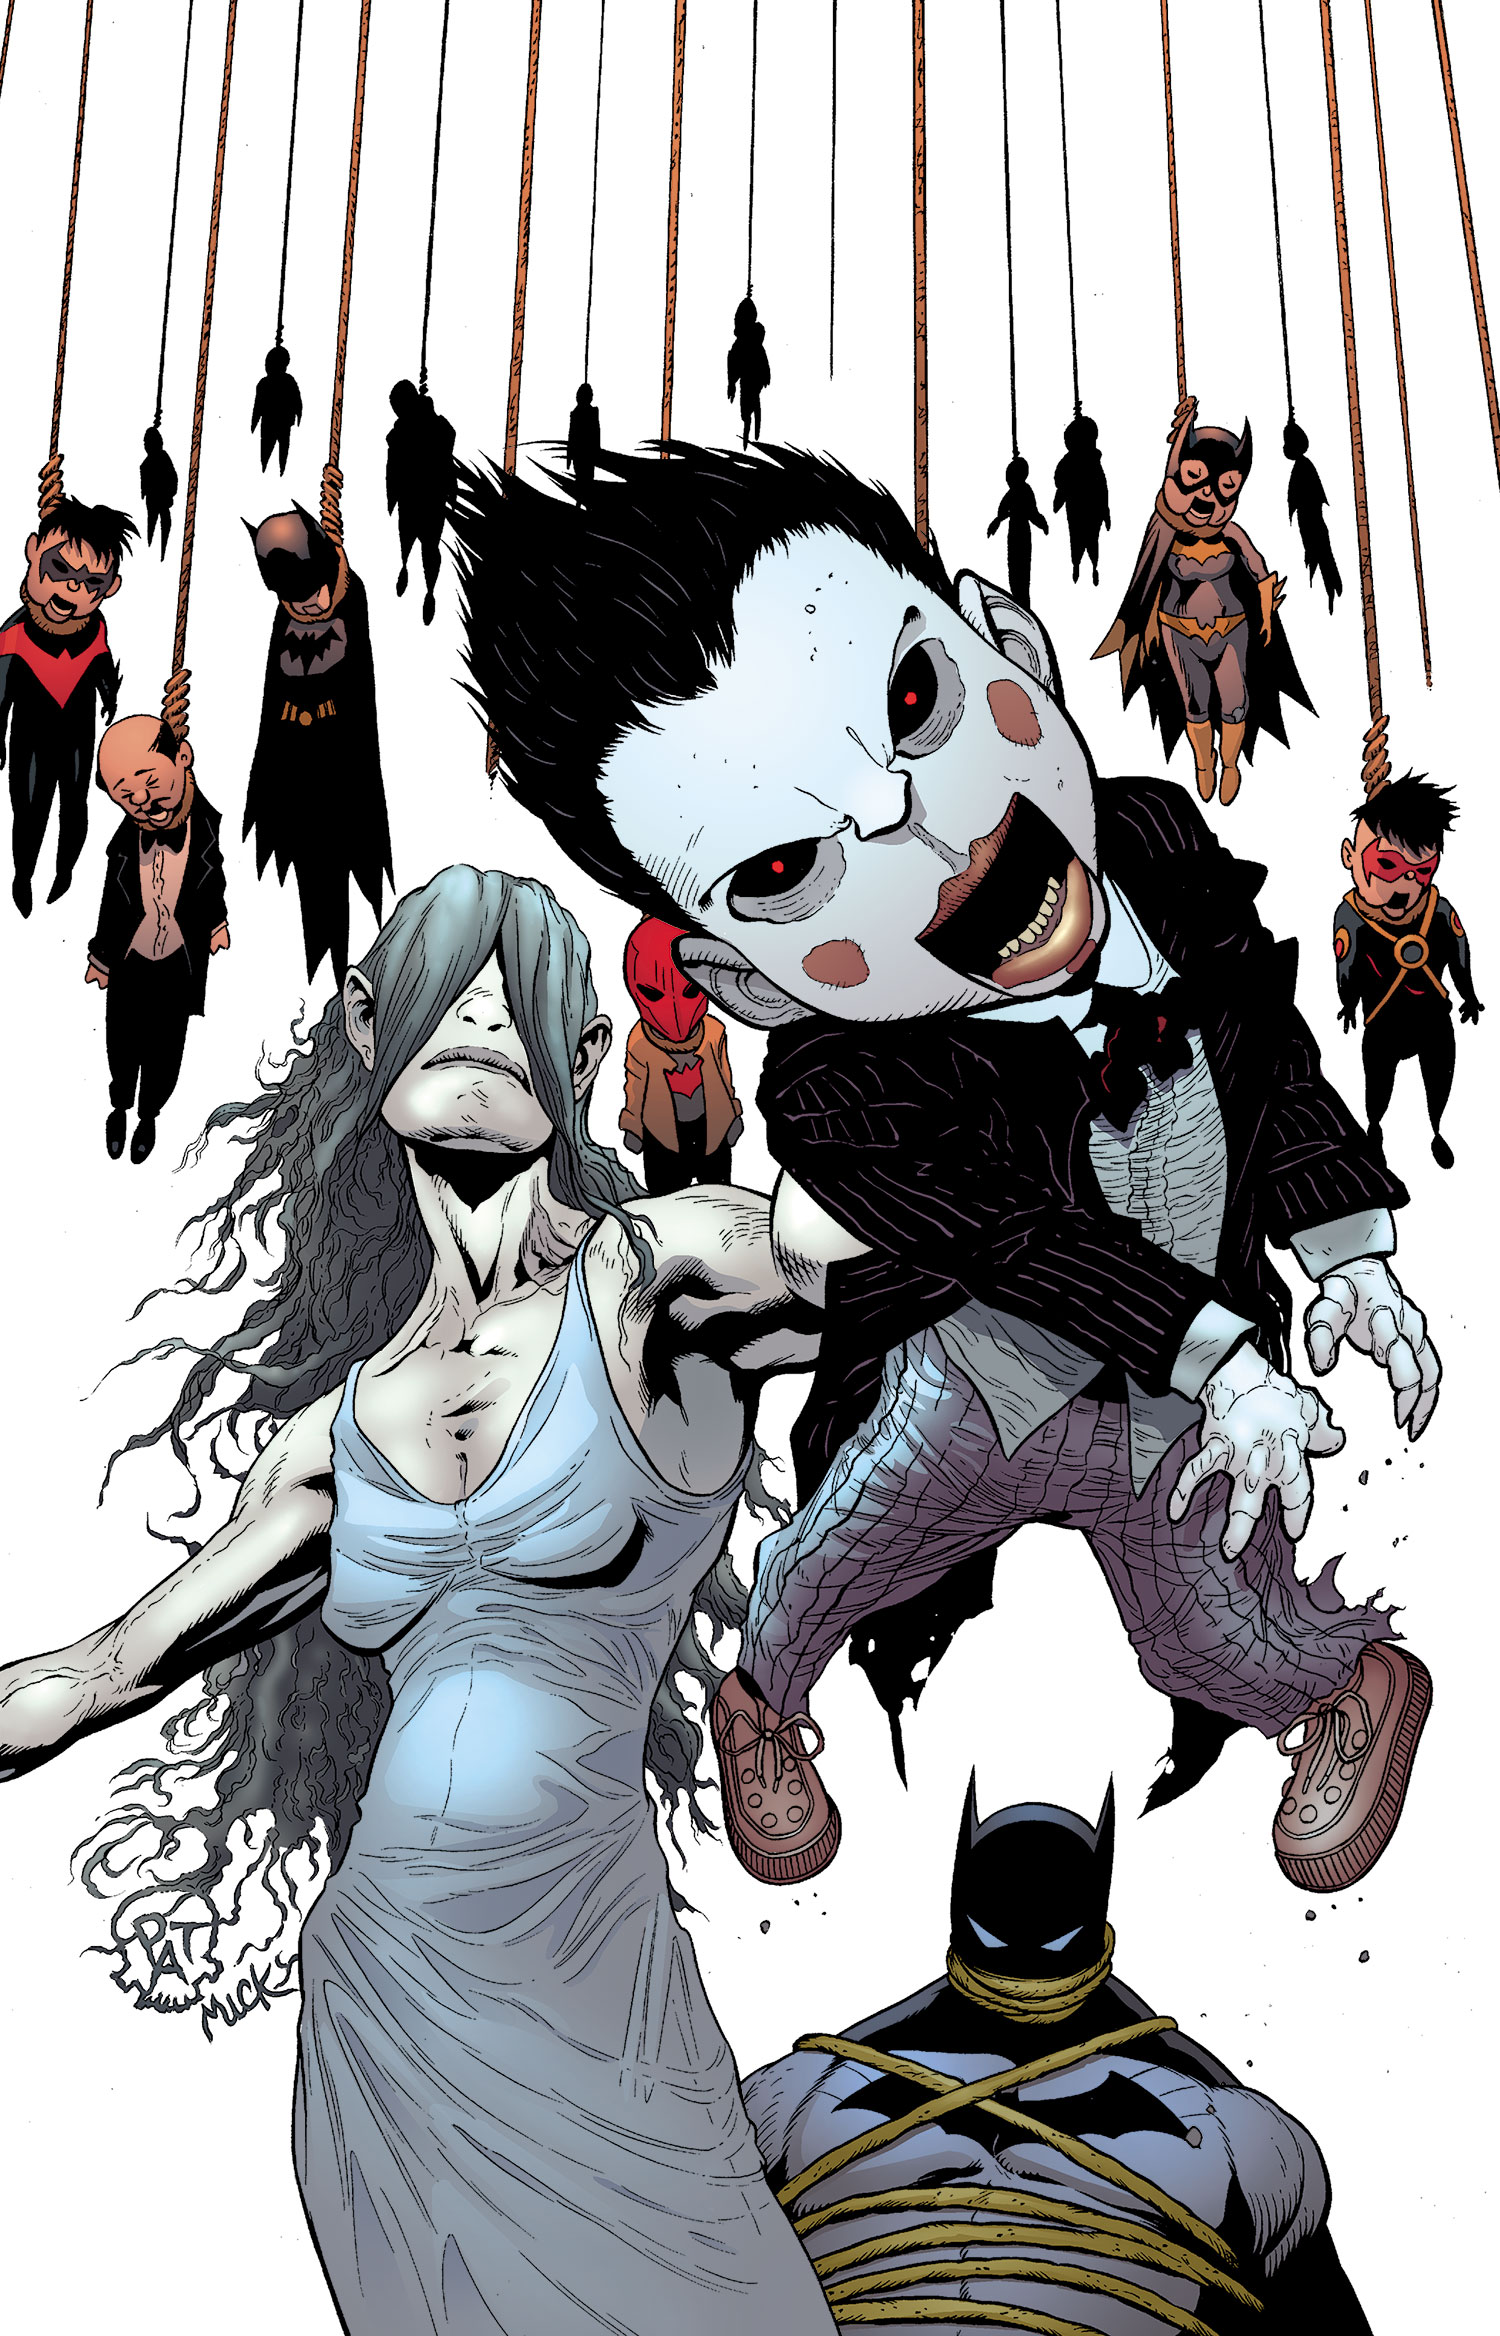 Batman The Dark Knight Vol 2 23.1 The Ventriloquist Textless.jpg